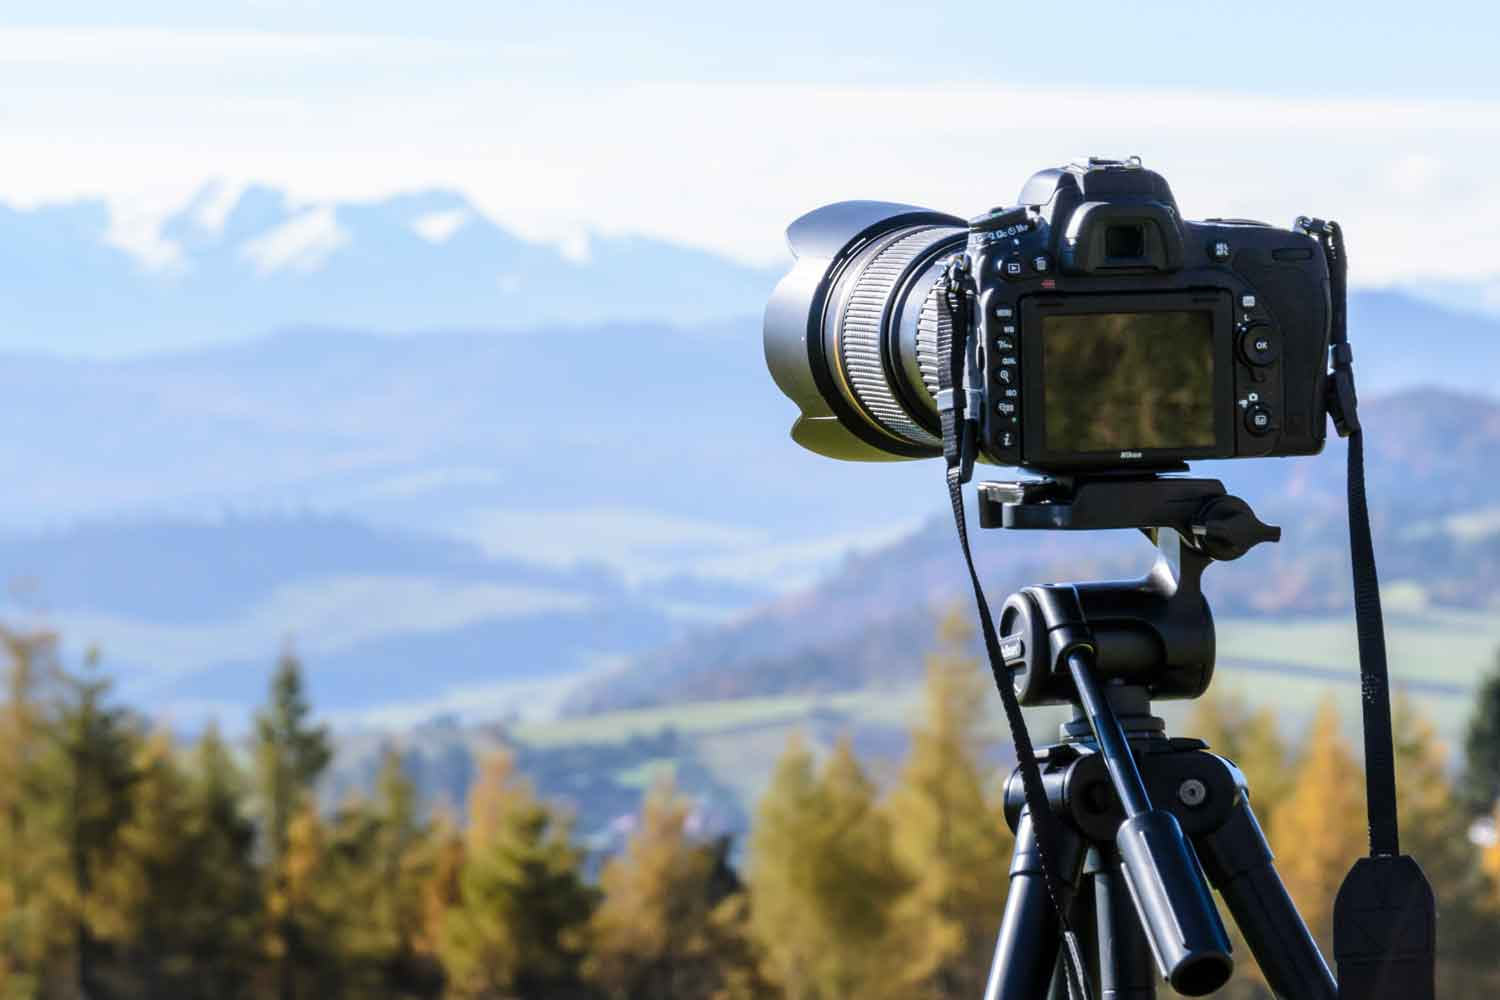 Why do you need a tripod to capture great photos?